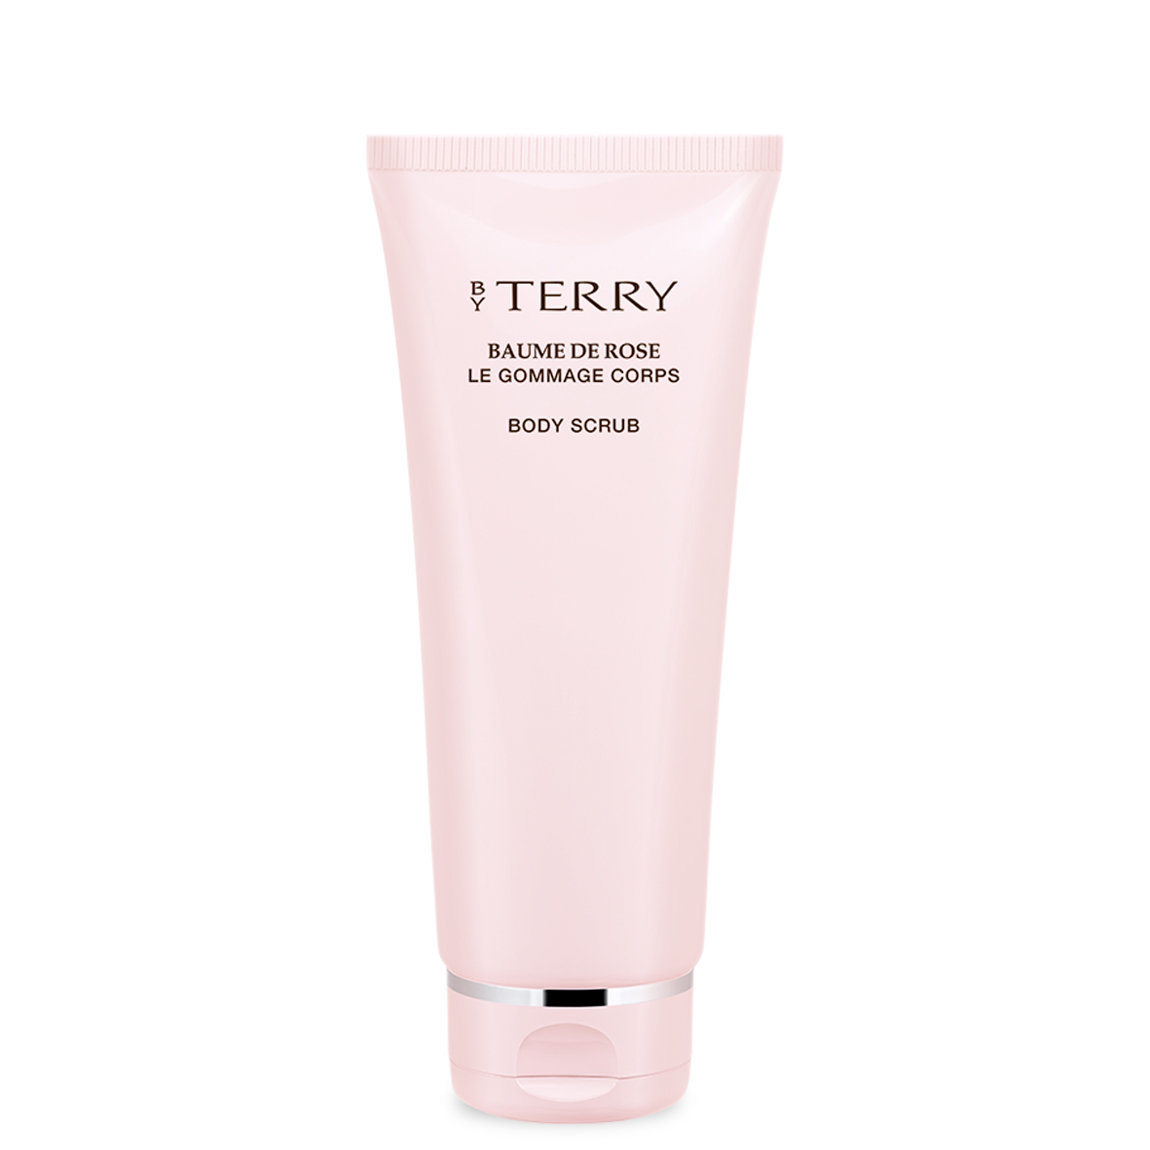 BY TERRY Baume de Rose Body Scrub alternative view 1 - product swatch.